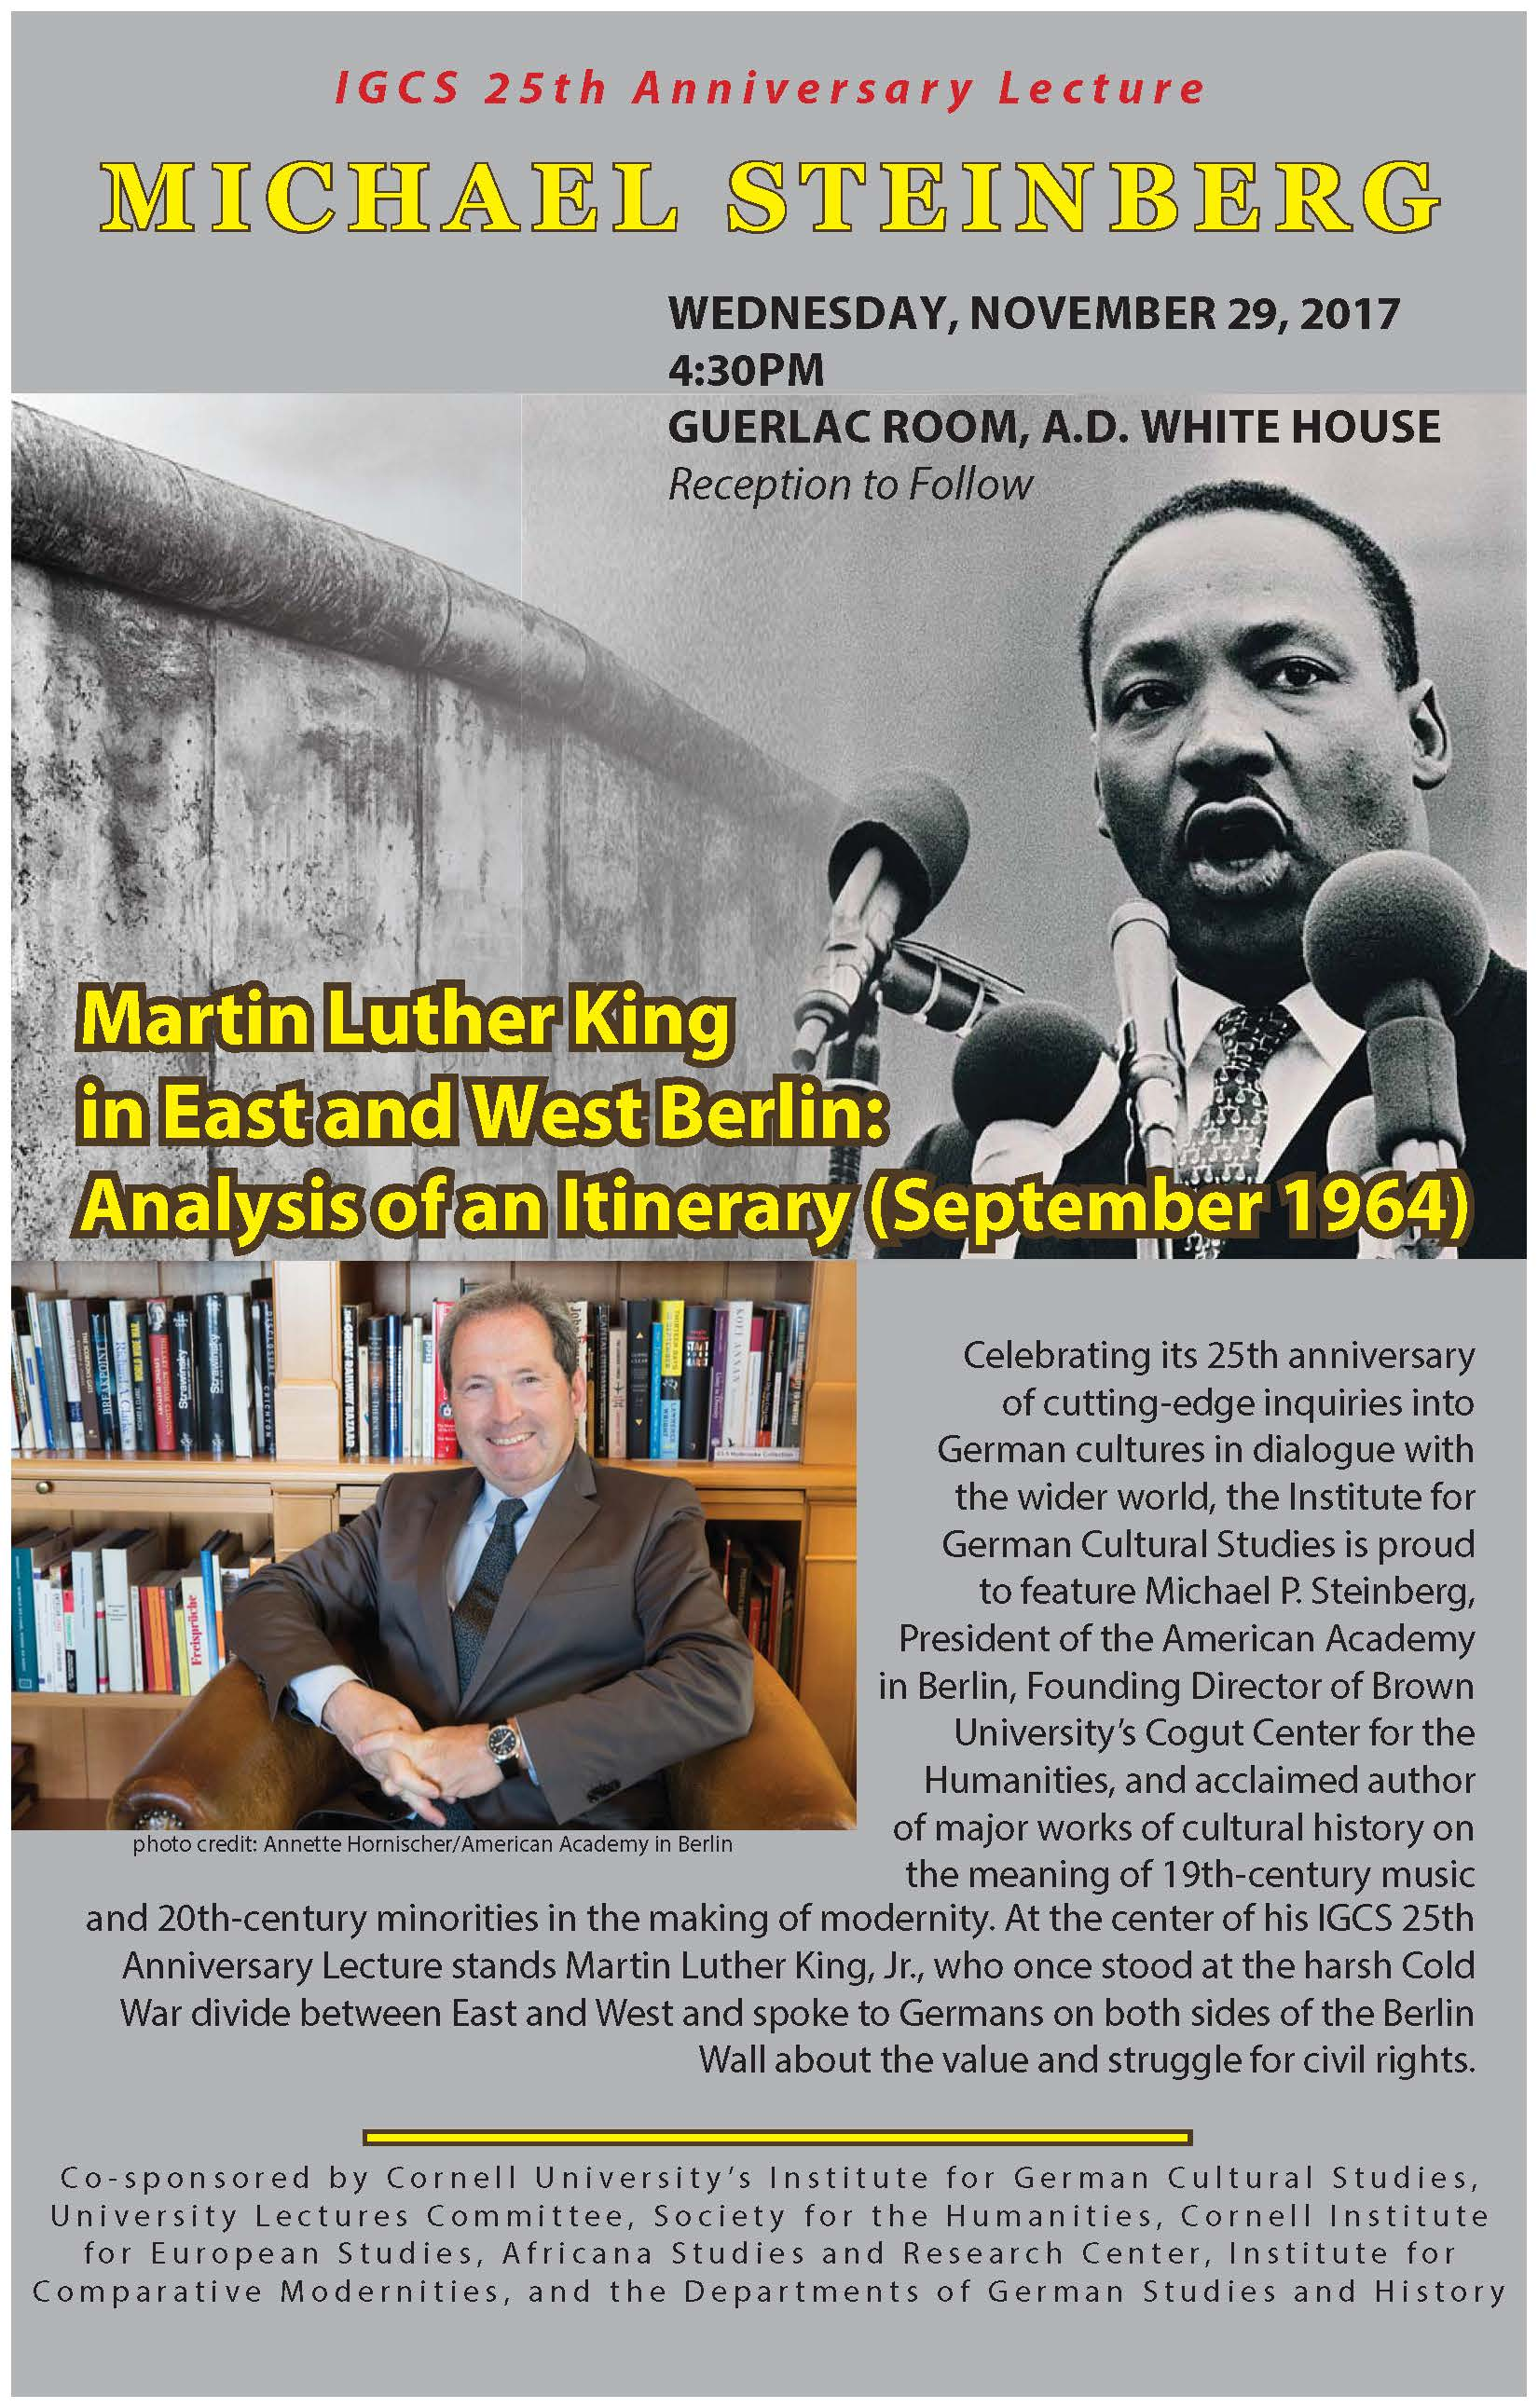 Martin Luther King in East and West Berlin: Analysis of an Itinerary (September 1964)